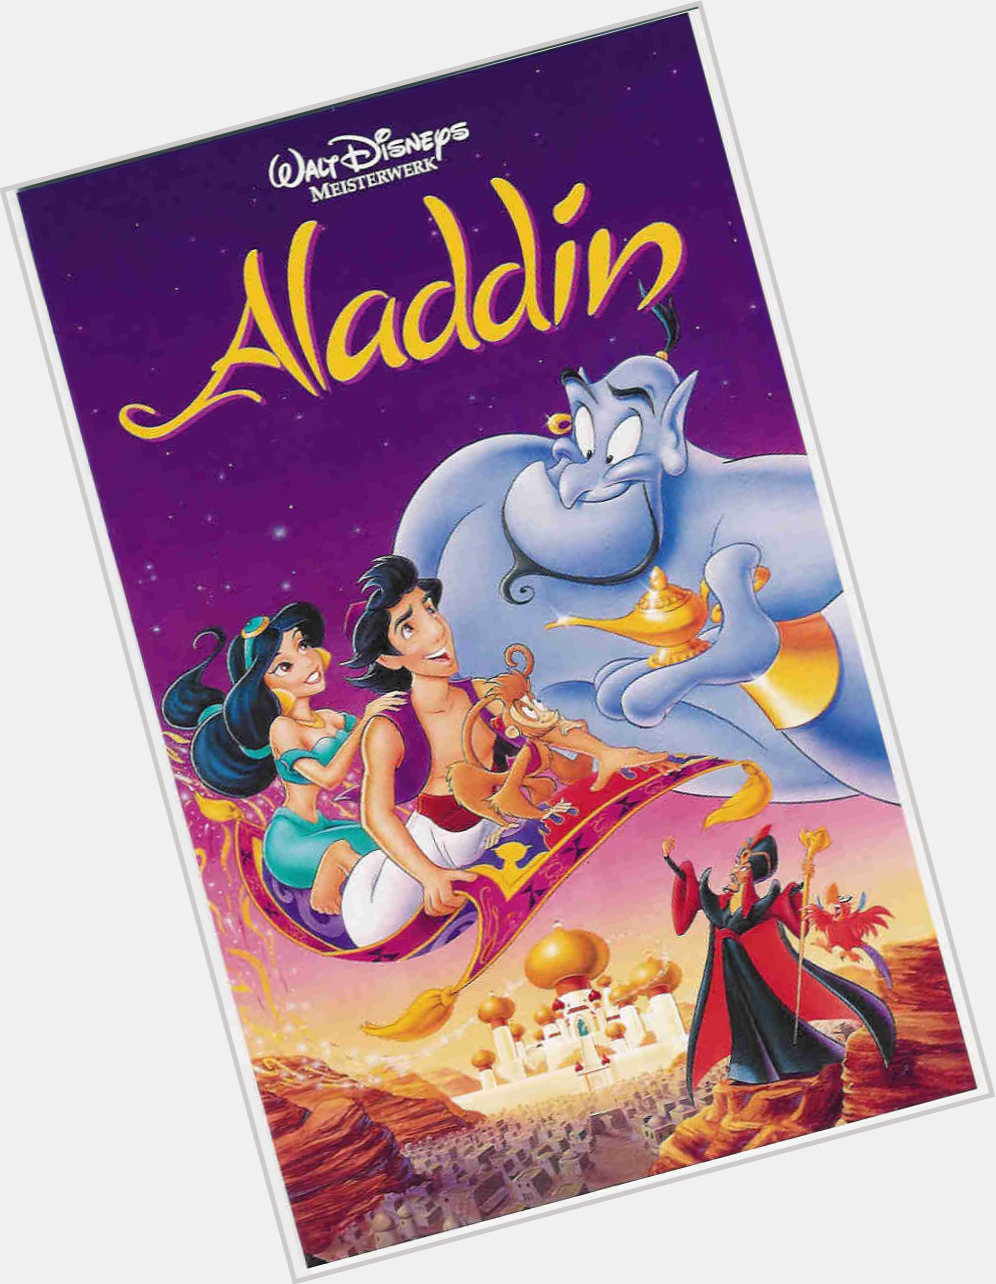 voice of aladdin 0.jpg